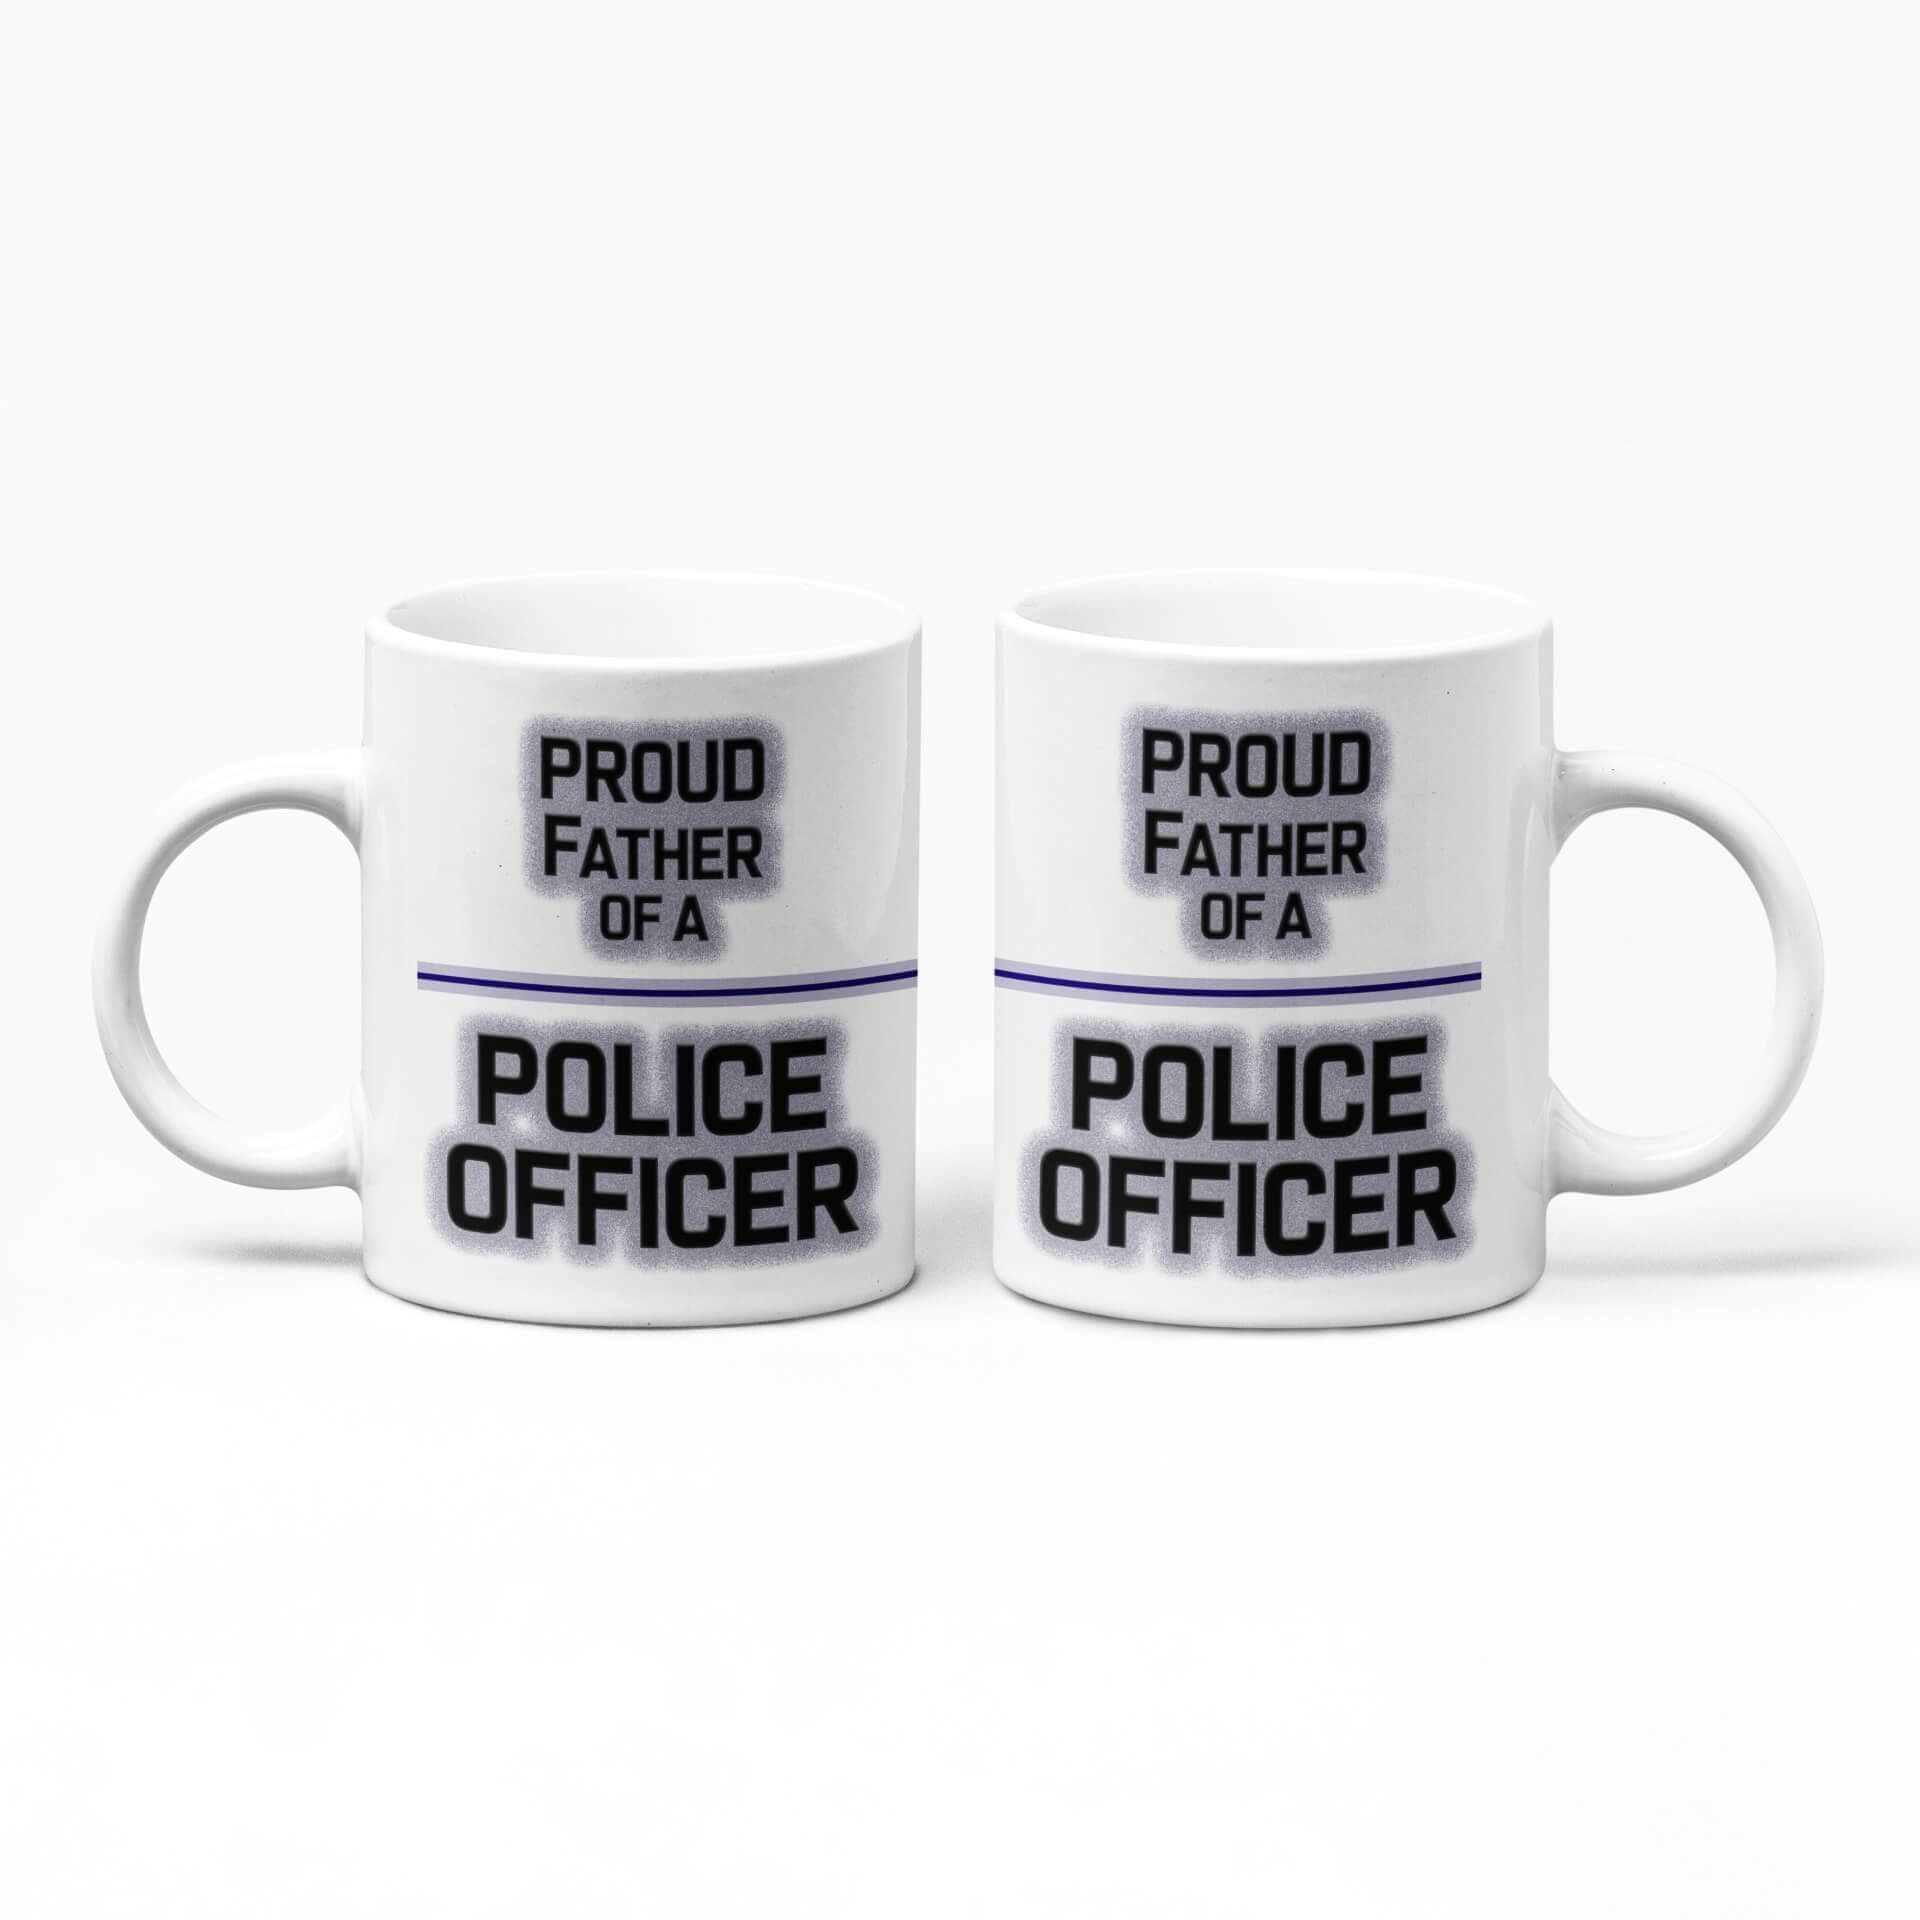 Proud Father of a Police Officer Mug